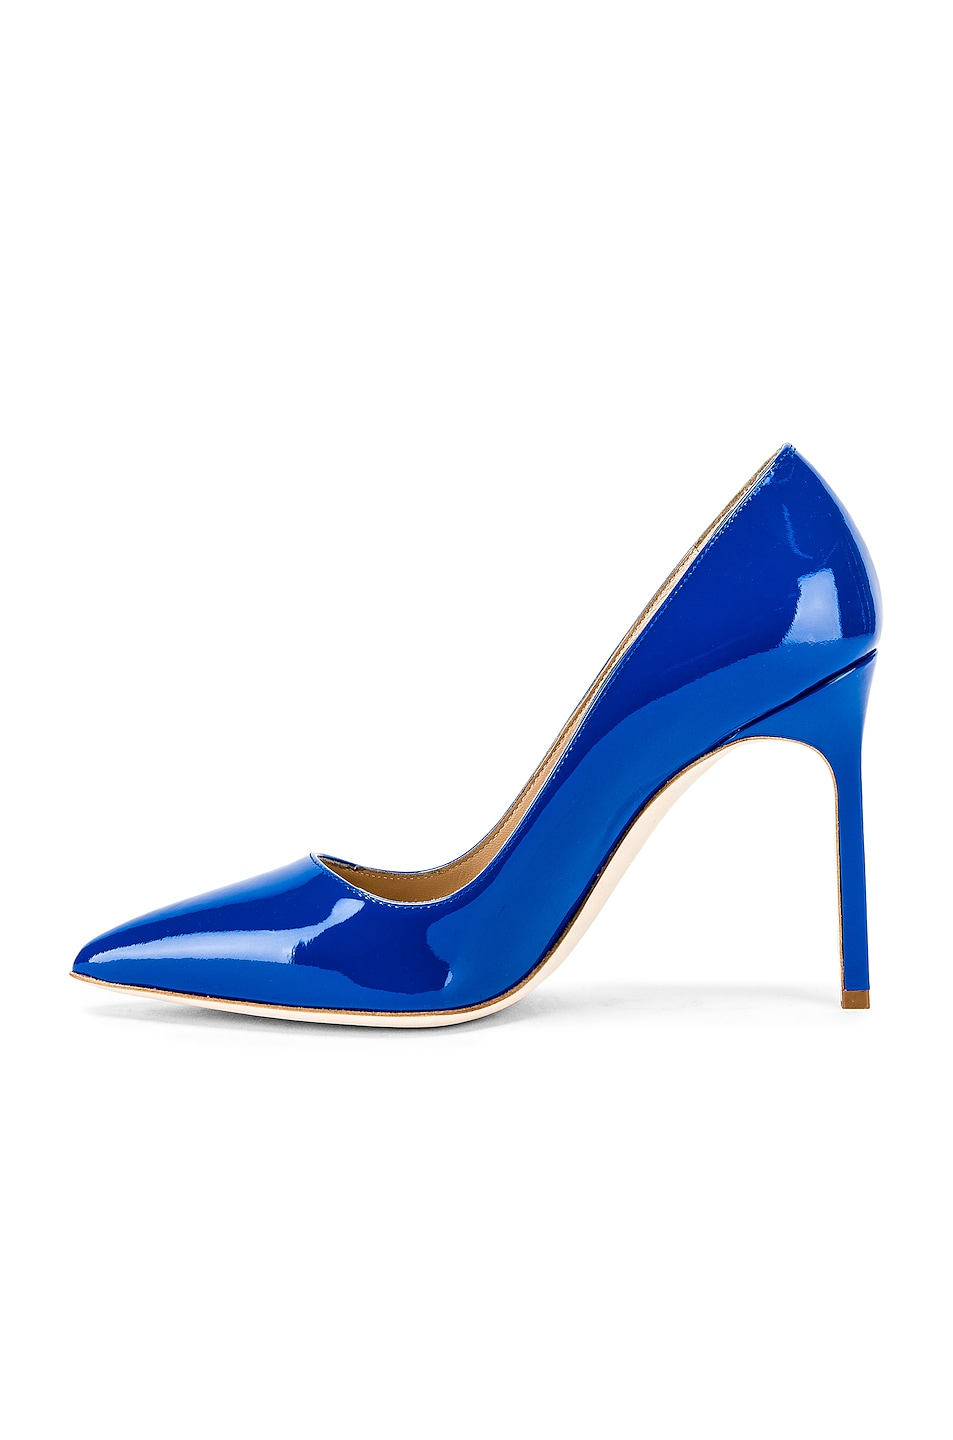 Image 5 of Manolo Blahnik BB Pump in Electric Blue Patent